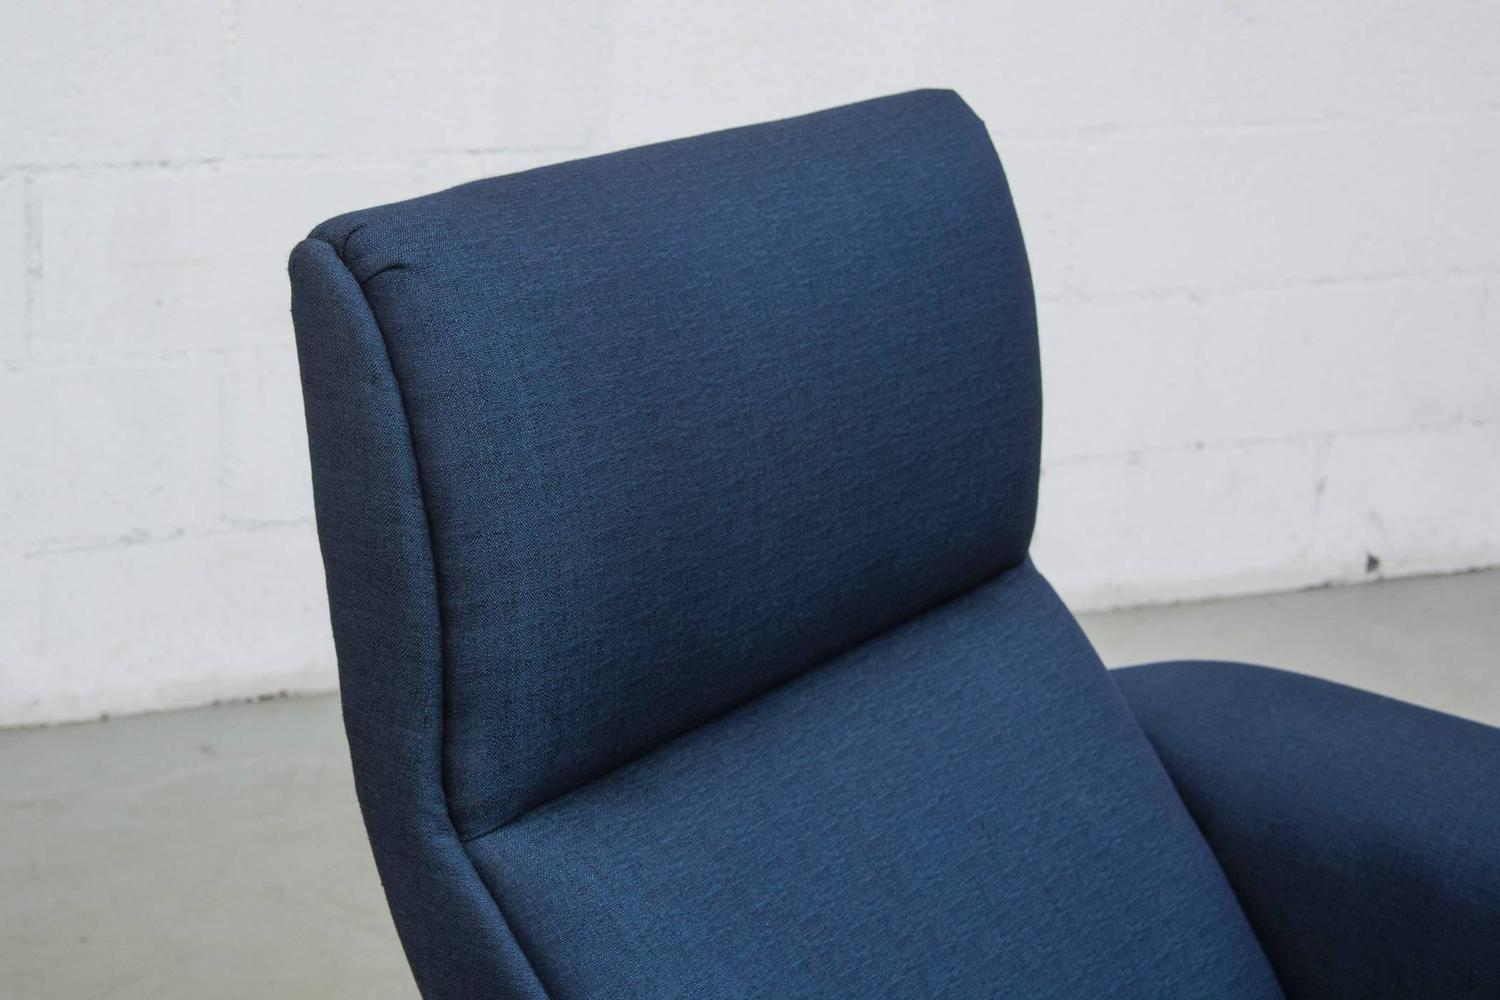 Kjaerholm Style Lounge Chair With Rosewood Legs By